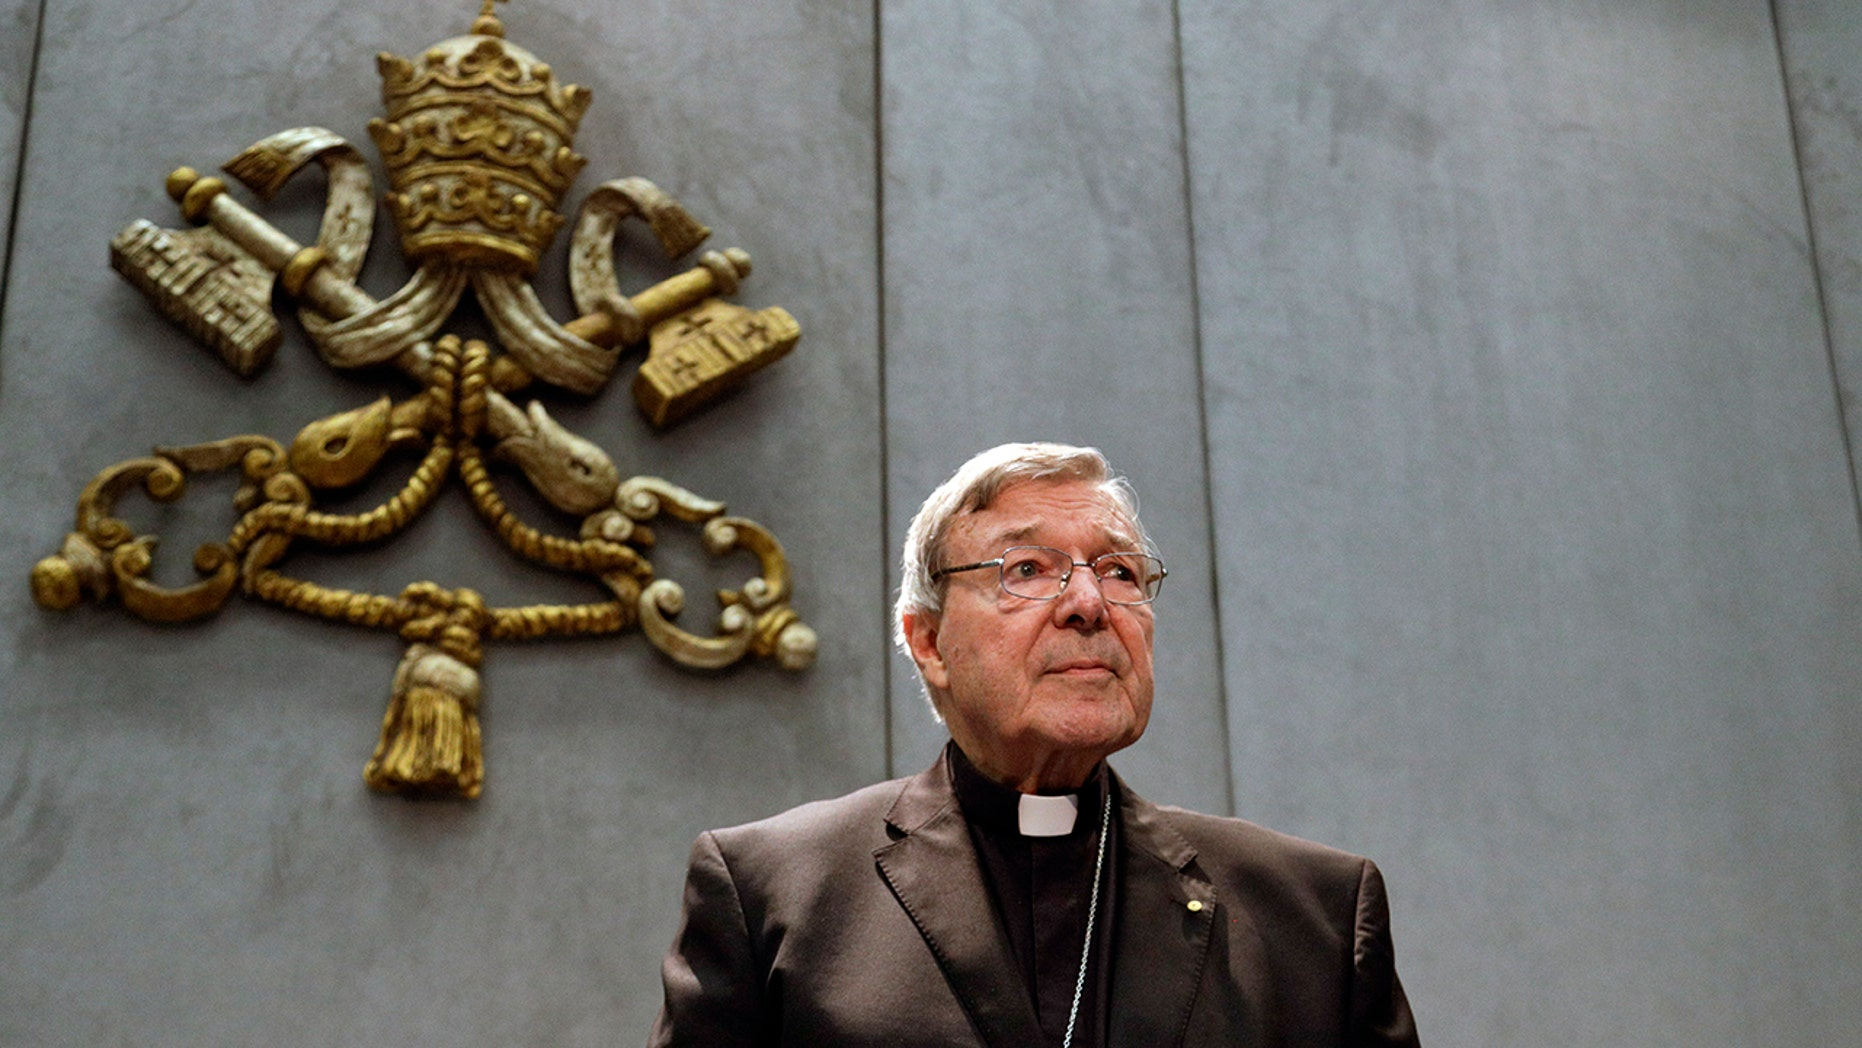 Cardinal George Pell was reportedly convicted in his native Australia of charges related to sexual abuse. The Vatican on Wednesday said he was removed from Pope Francis' informal cabinet.(AP Photo/Gregorio Borgia, File)